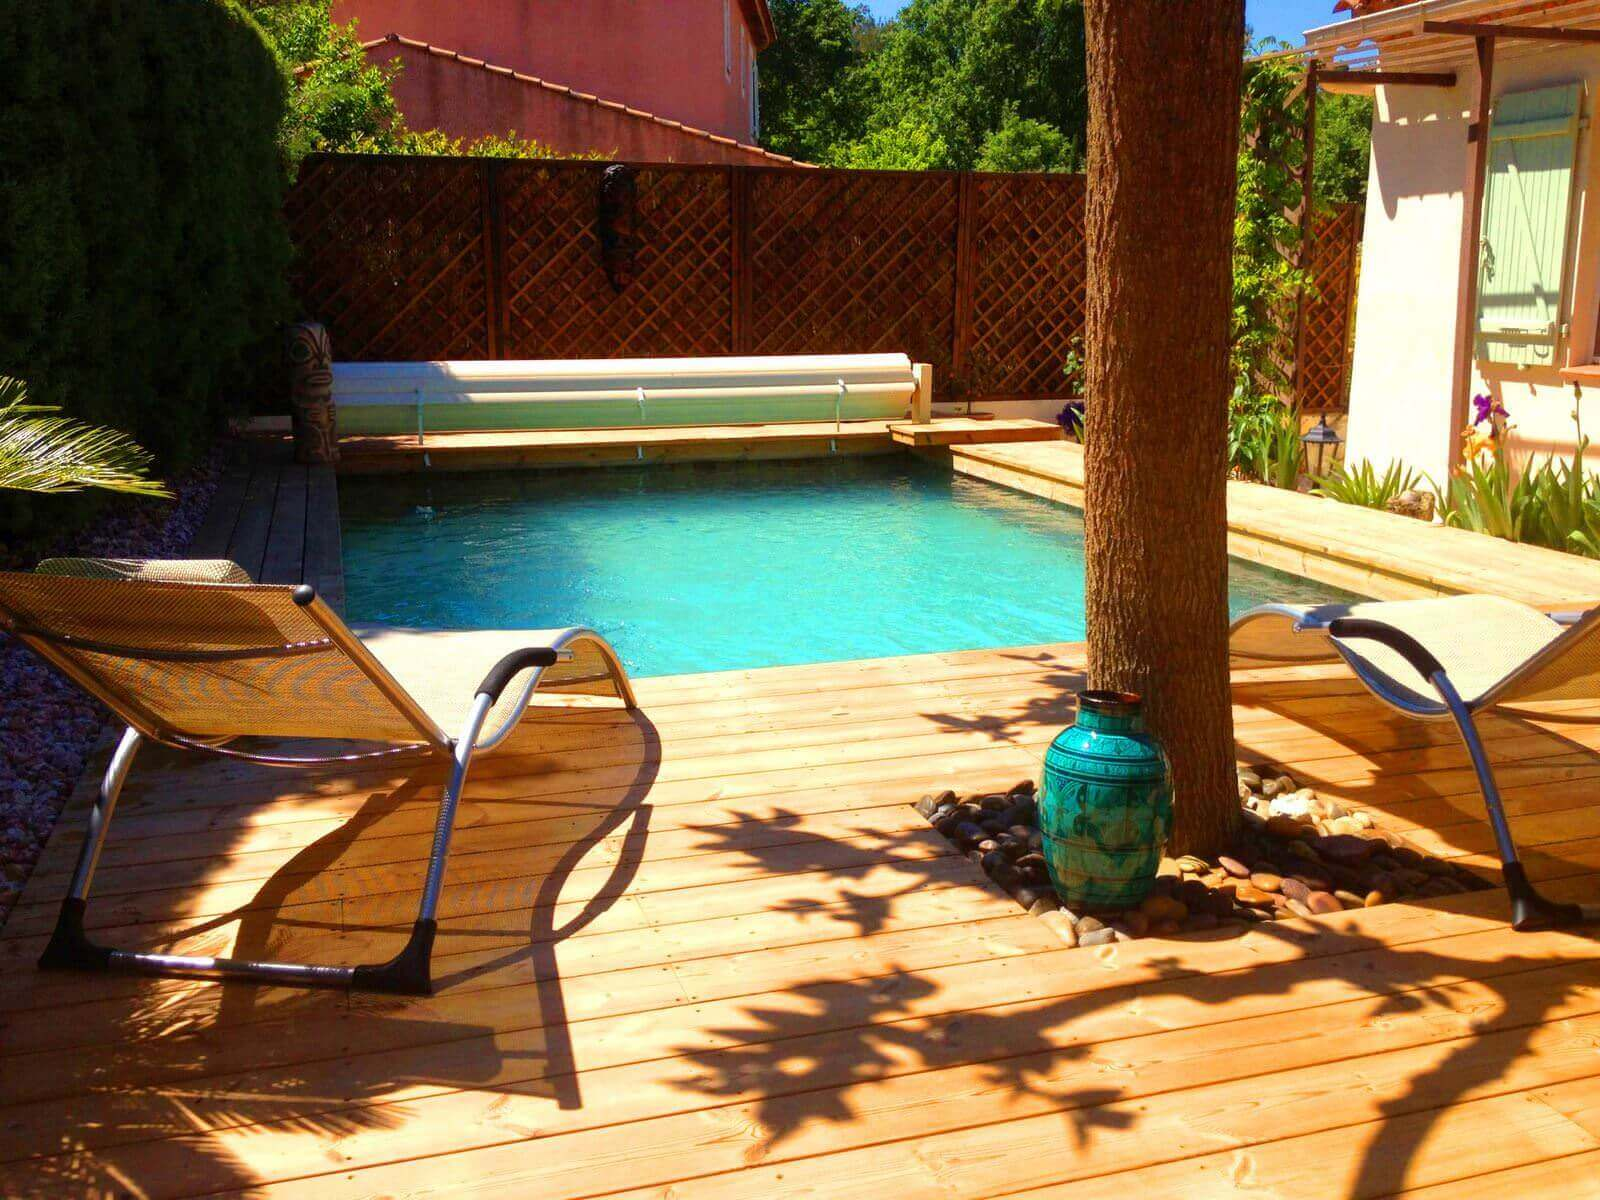 piscine hors sol bois avec terrasse piscine hors sol bois avec terrasse with piscine hors sol. Black Bedroom Furniture Sets. Home Design Ideas